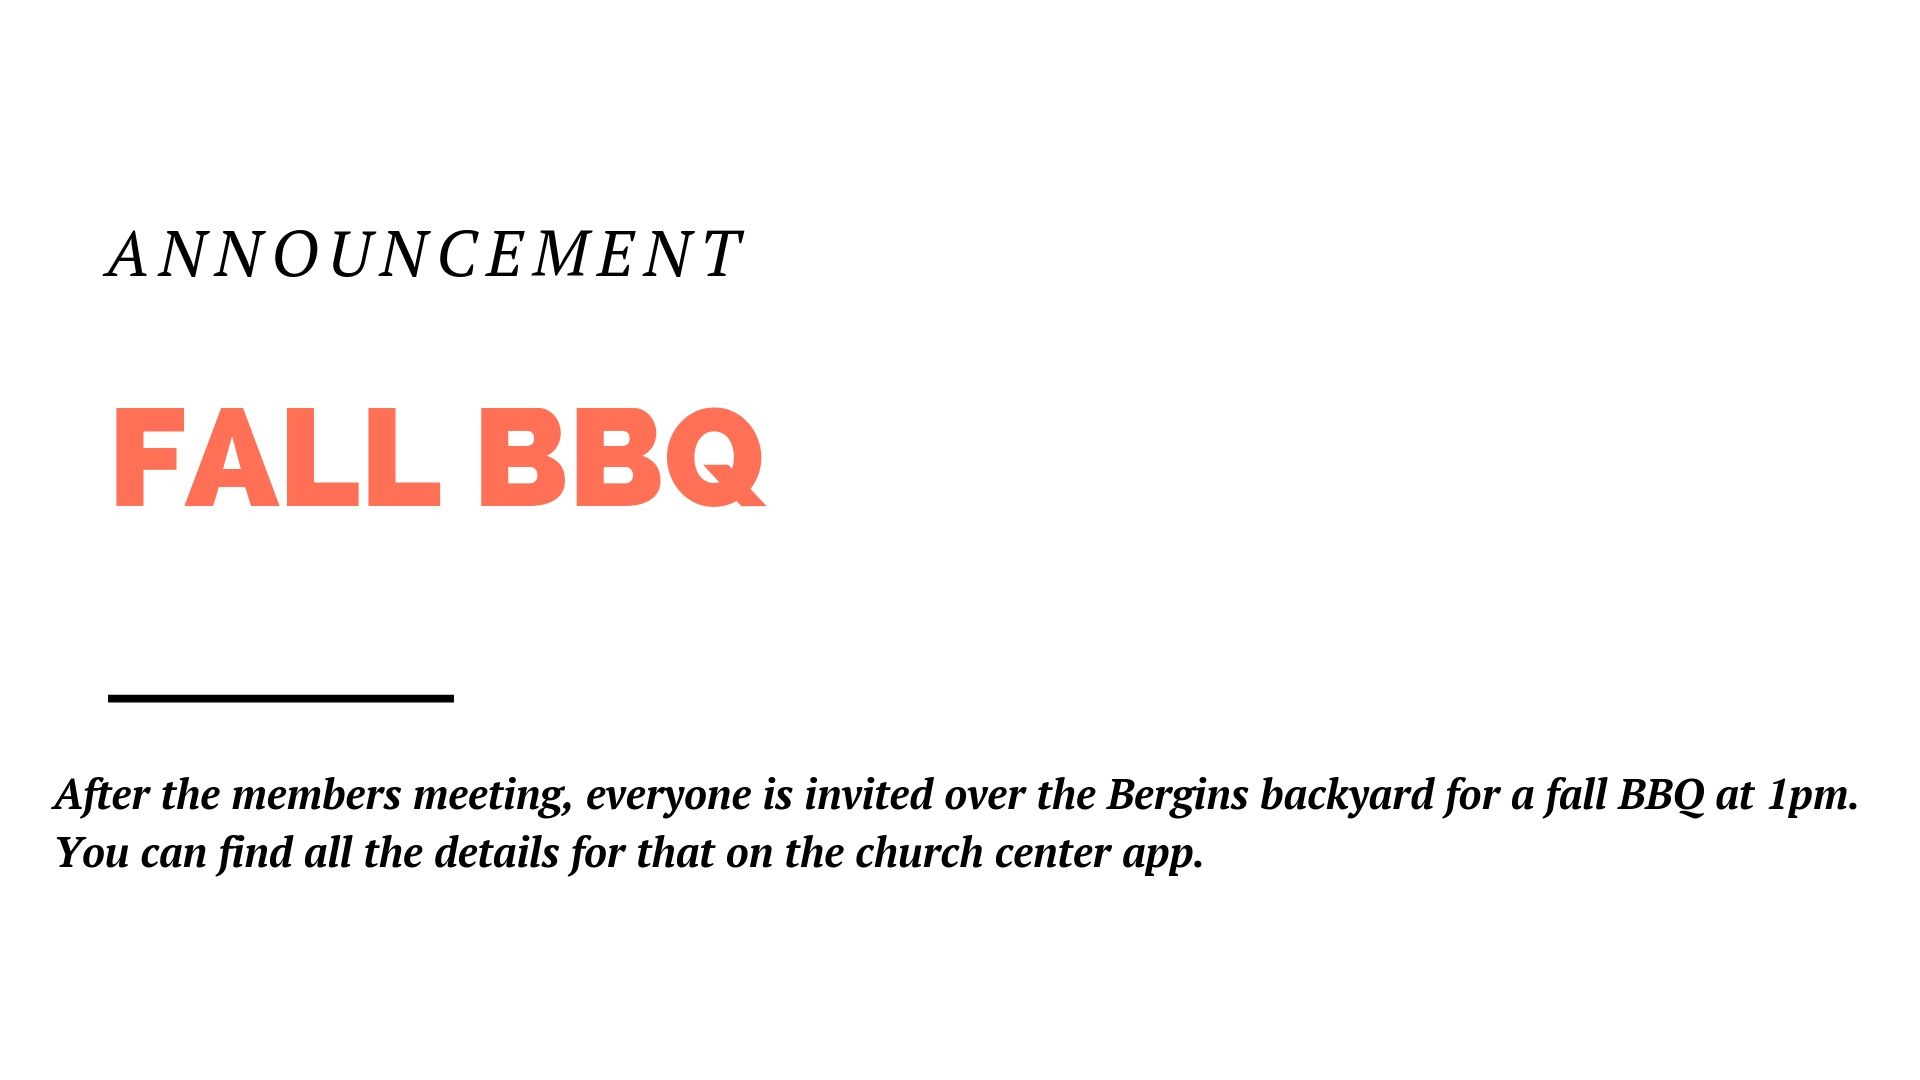 After the members meeting, everyone is invited over the Bergins backyard for a fall BBQ at 1pm. You can find all the details for that on the church center app.